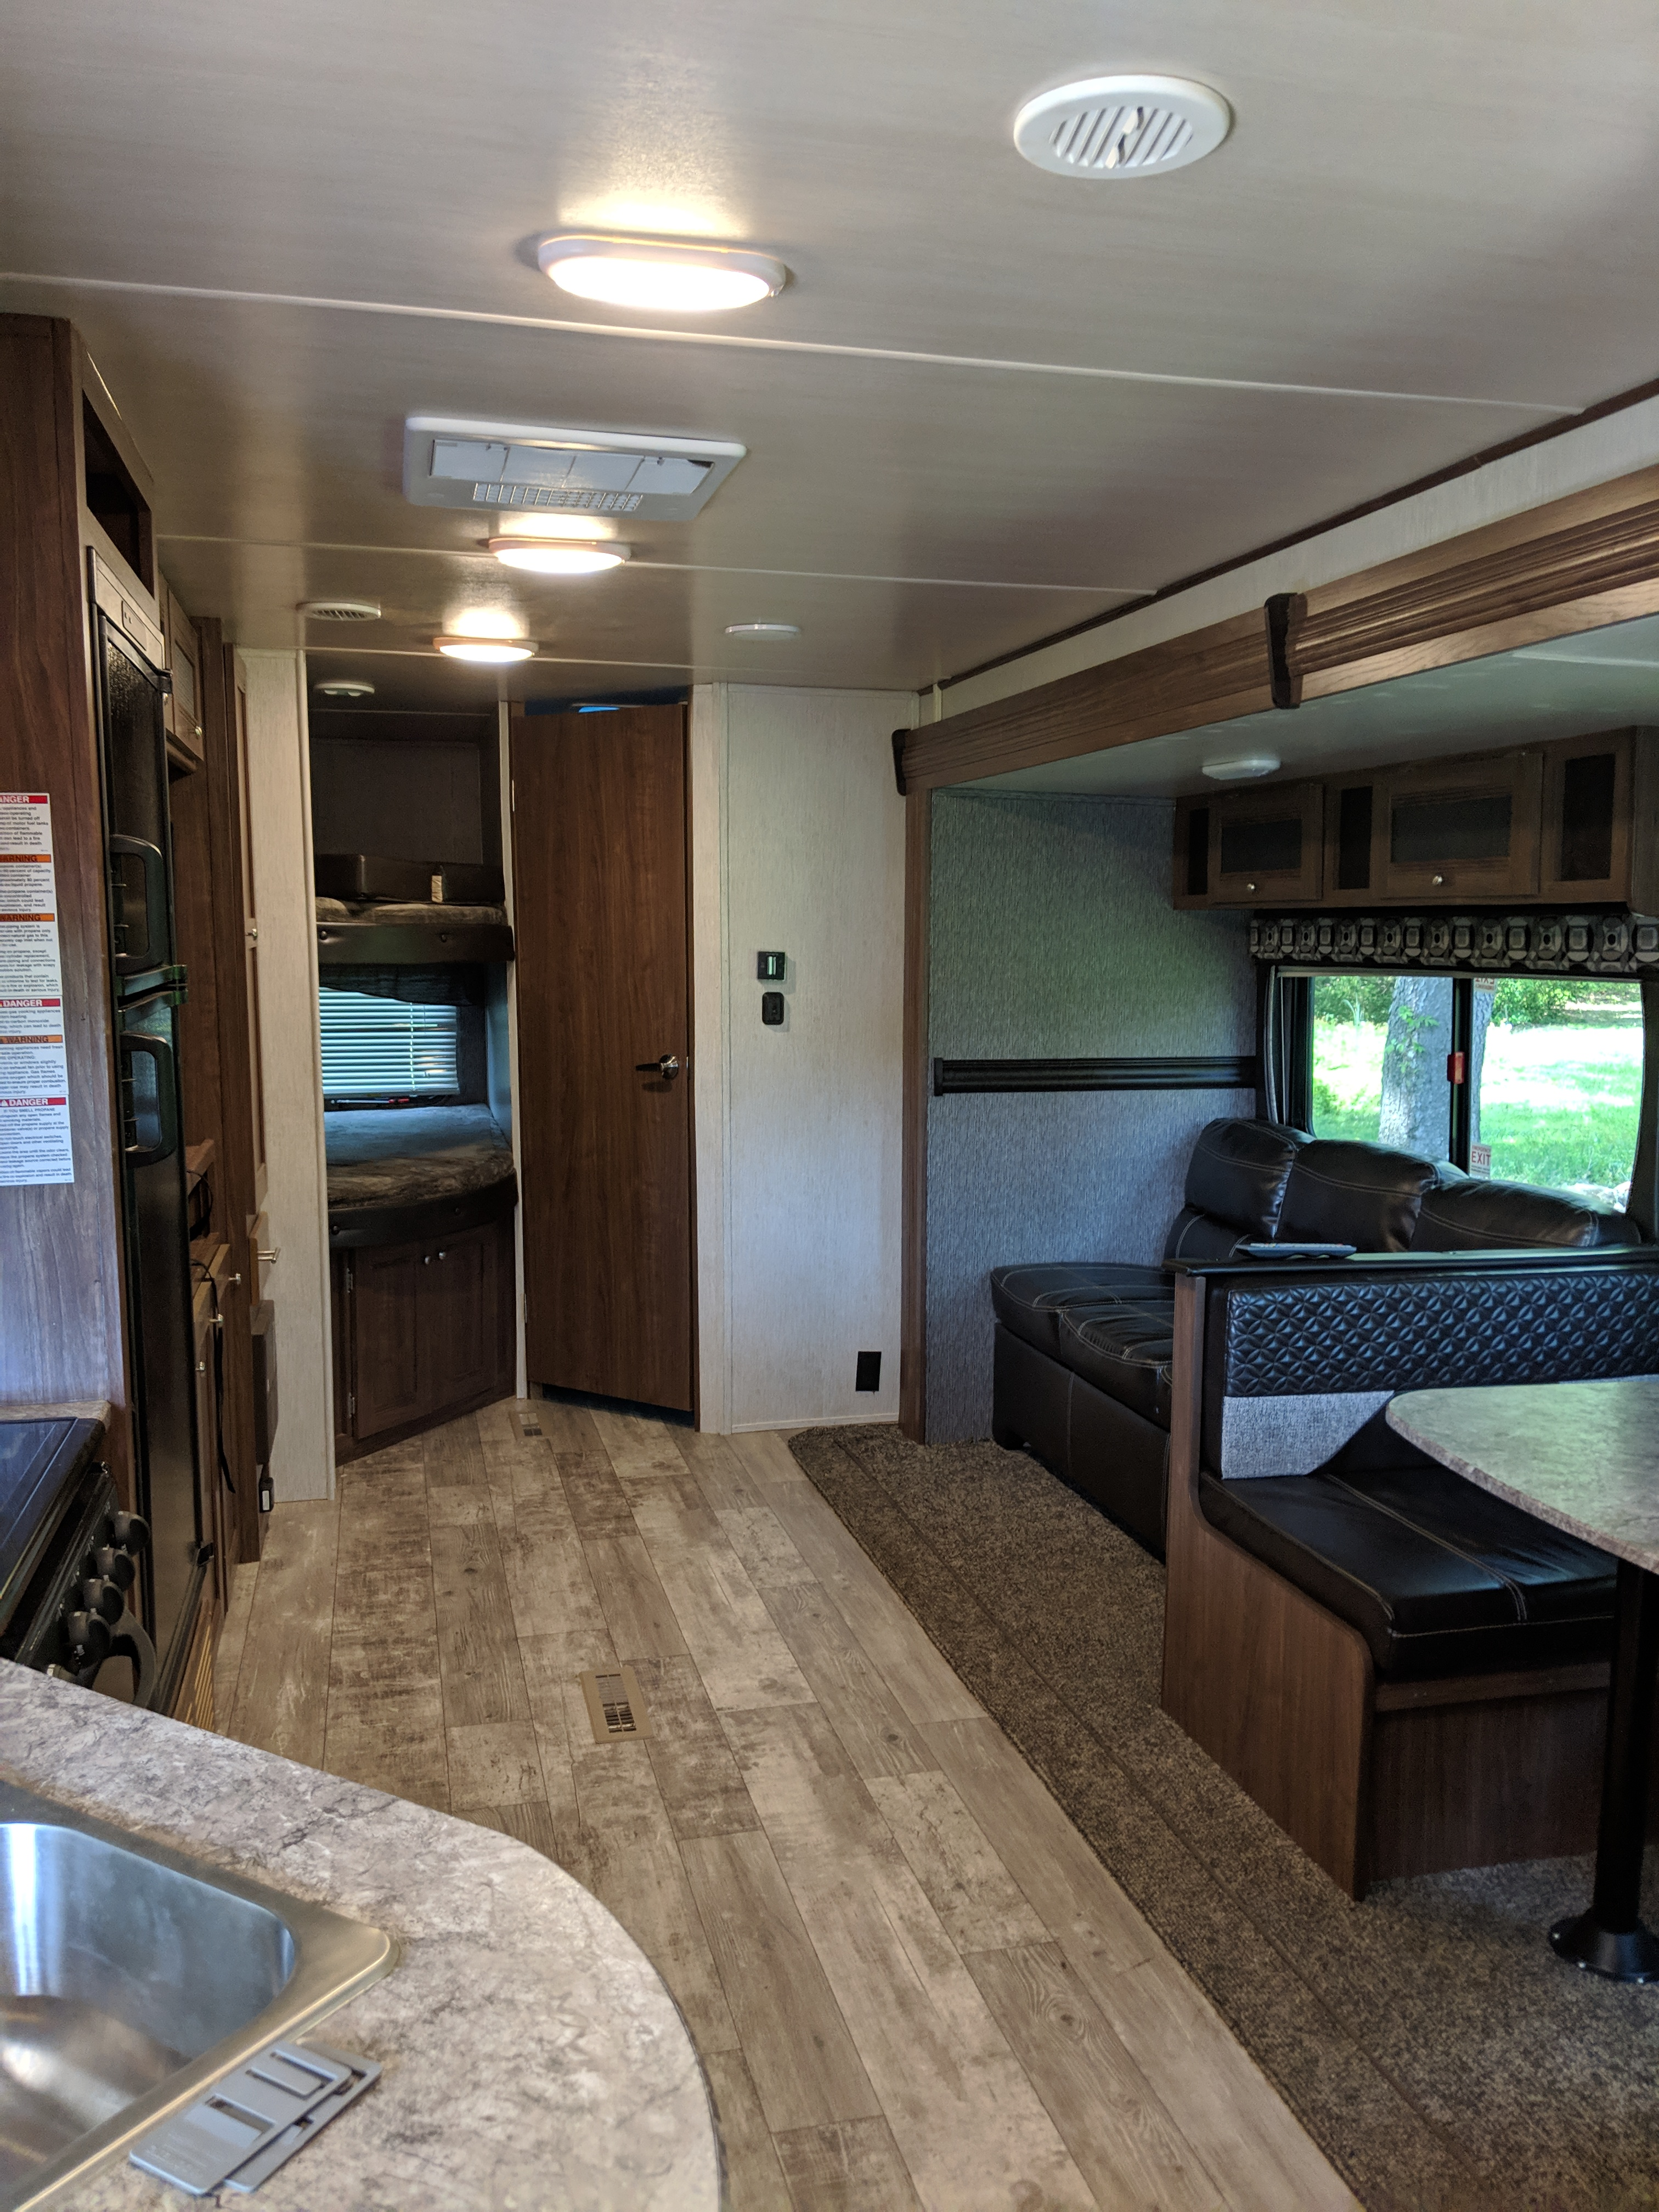 Living Space - 2 bunks on left. Heartland Pioneer 2019